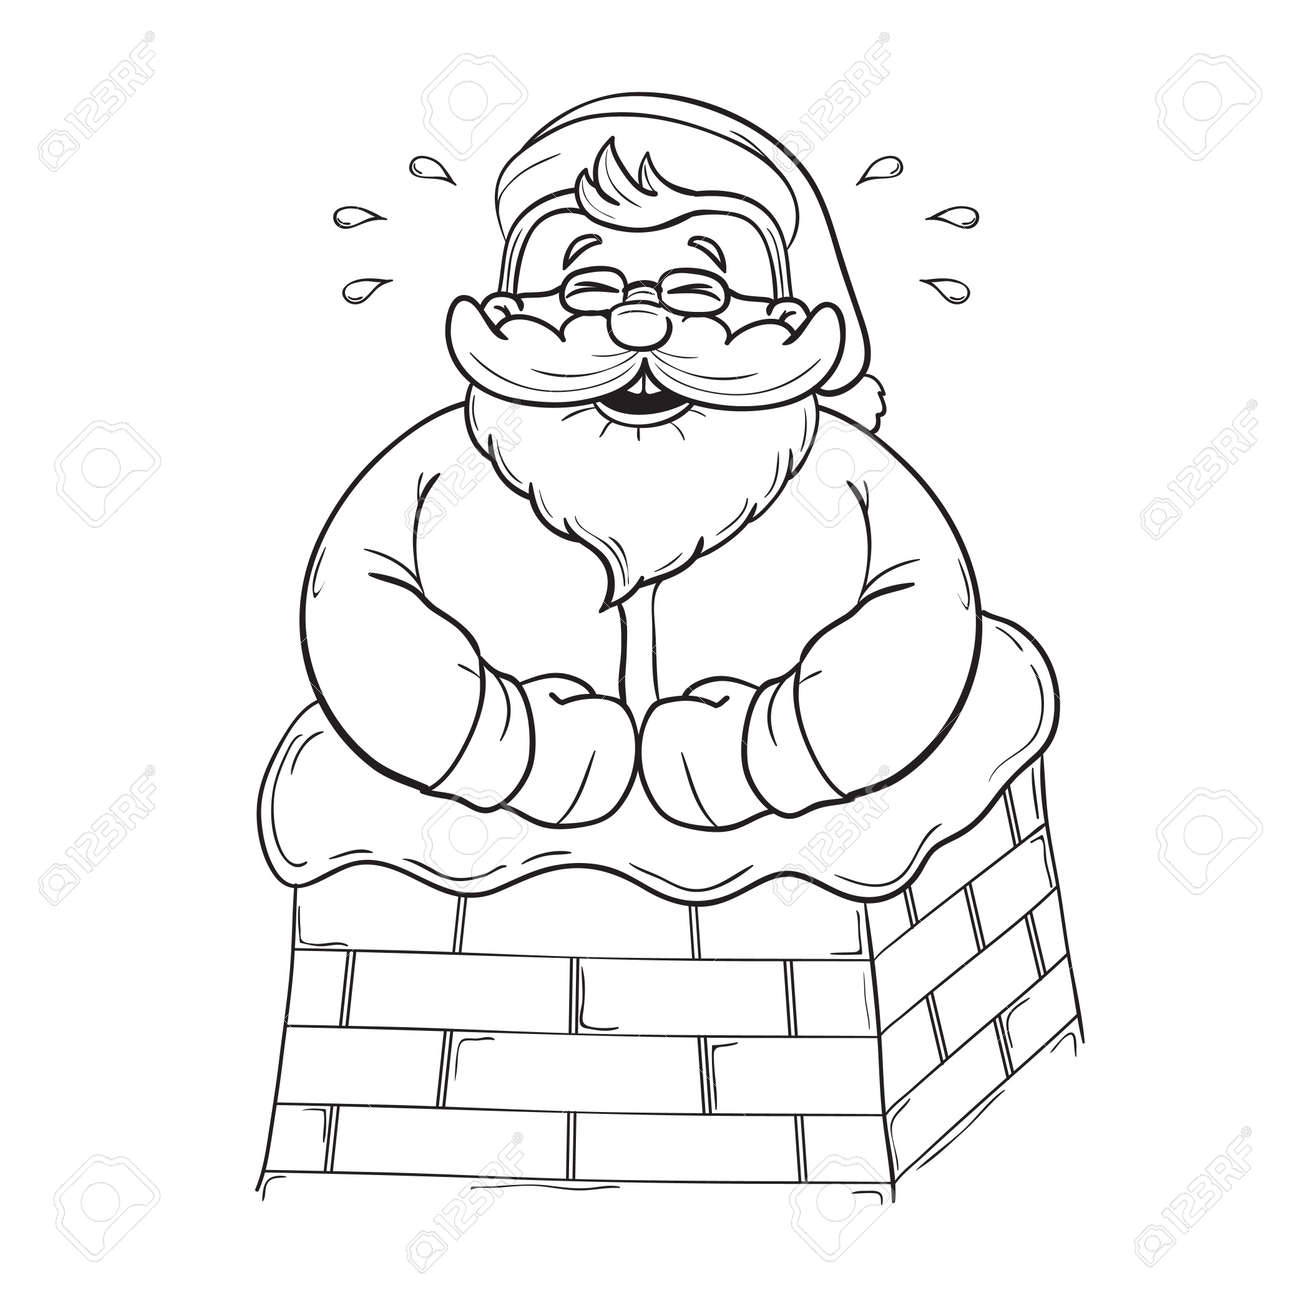 Santa In A Chimney Template - Best Chimney 2018